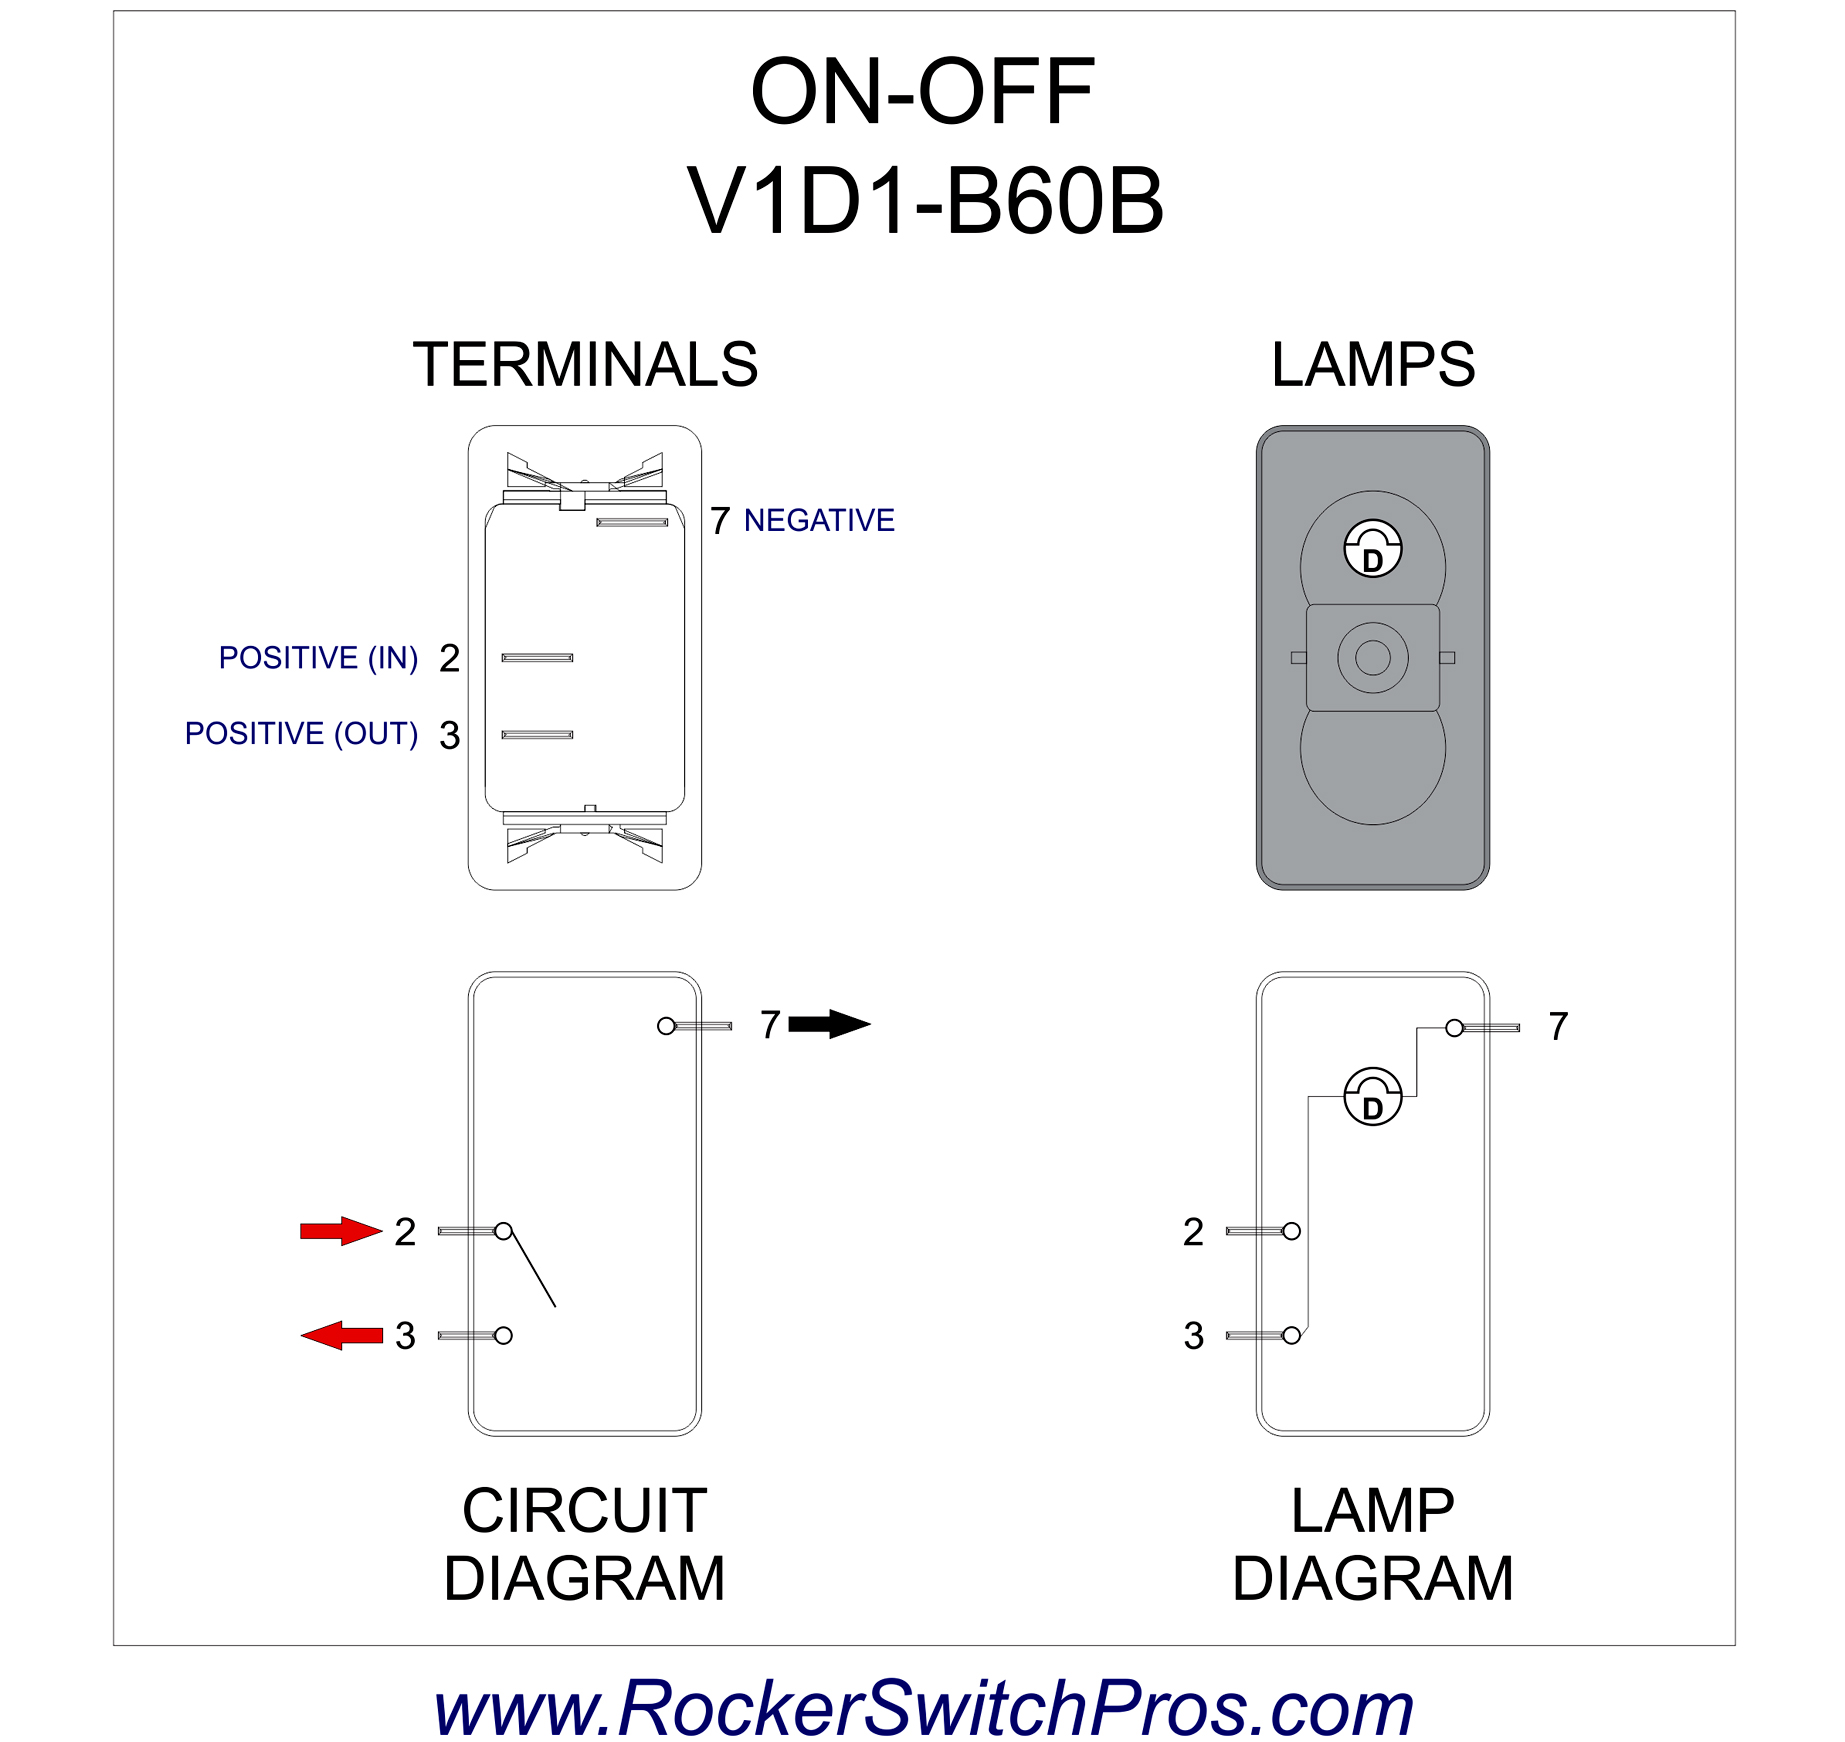 spst switch wiring diagram 2005 jeep wrangler ignition rocker on off 1 dep light v1d1